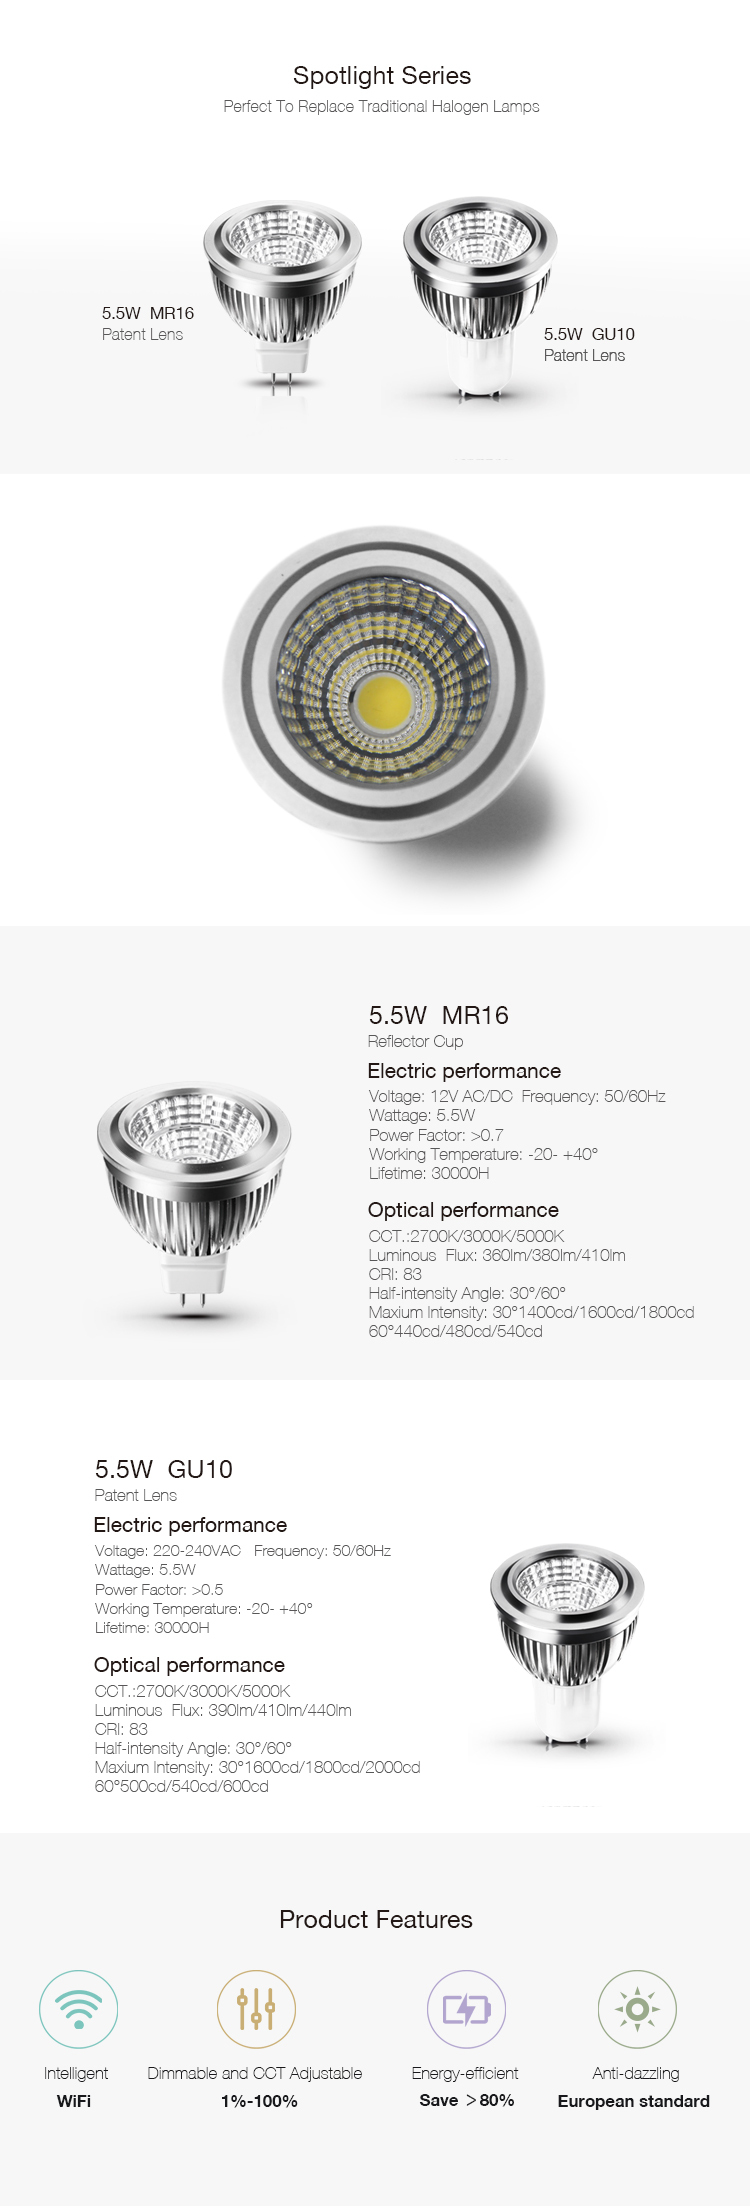 Type B LED Spot light 5.5W MR 16 Reflector Cup